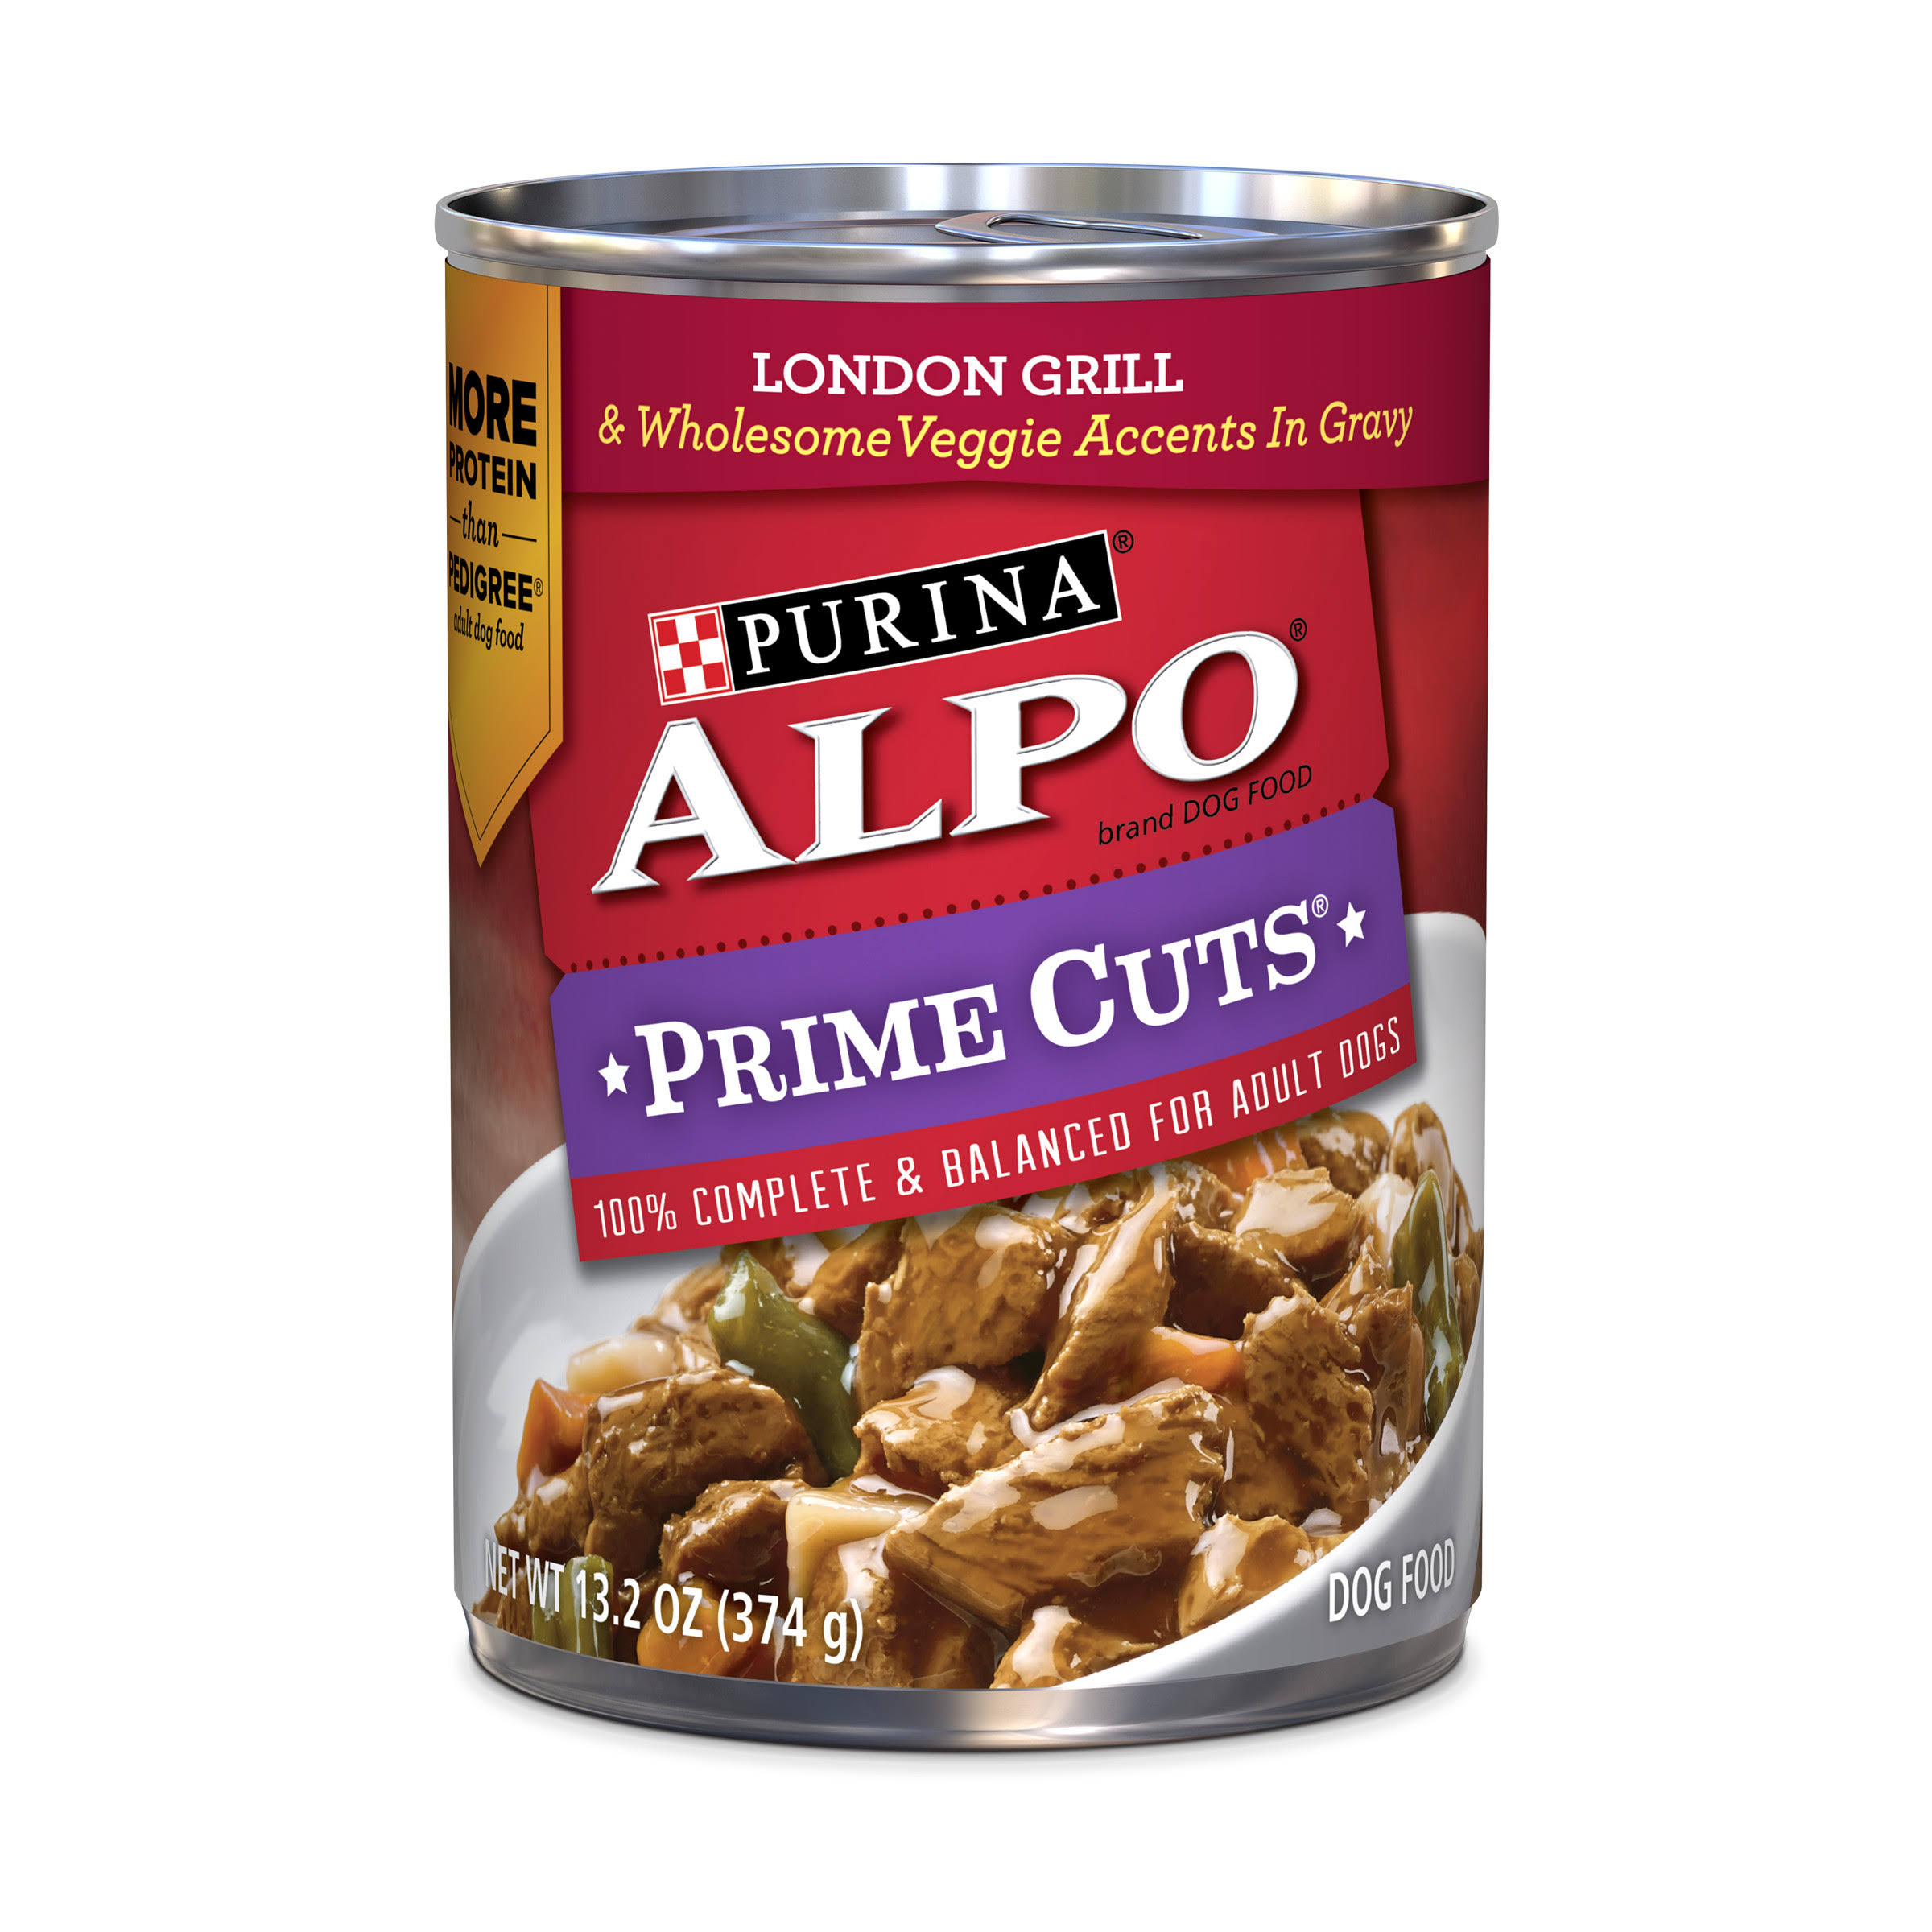 Purina Alpo Prime Cuts London Grill Dog Food - 13oz